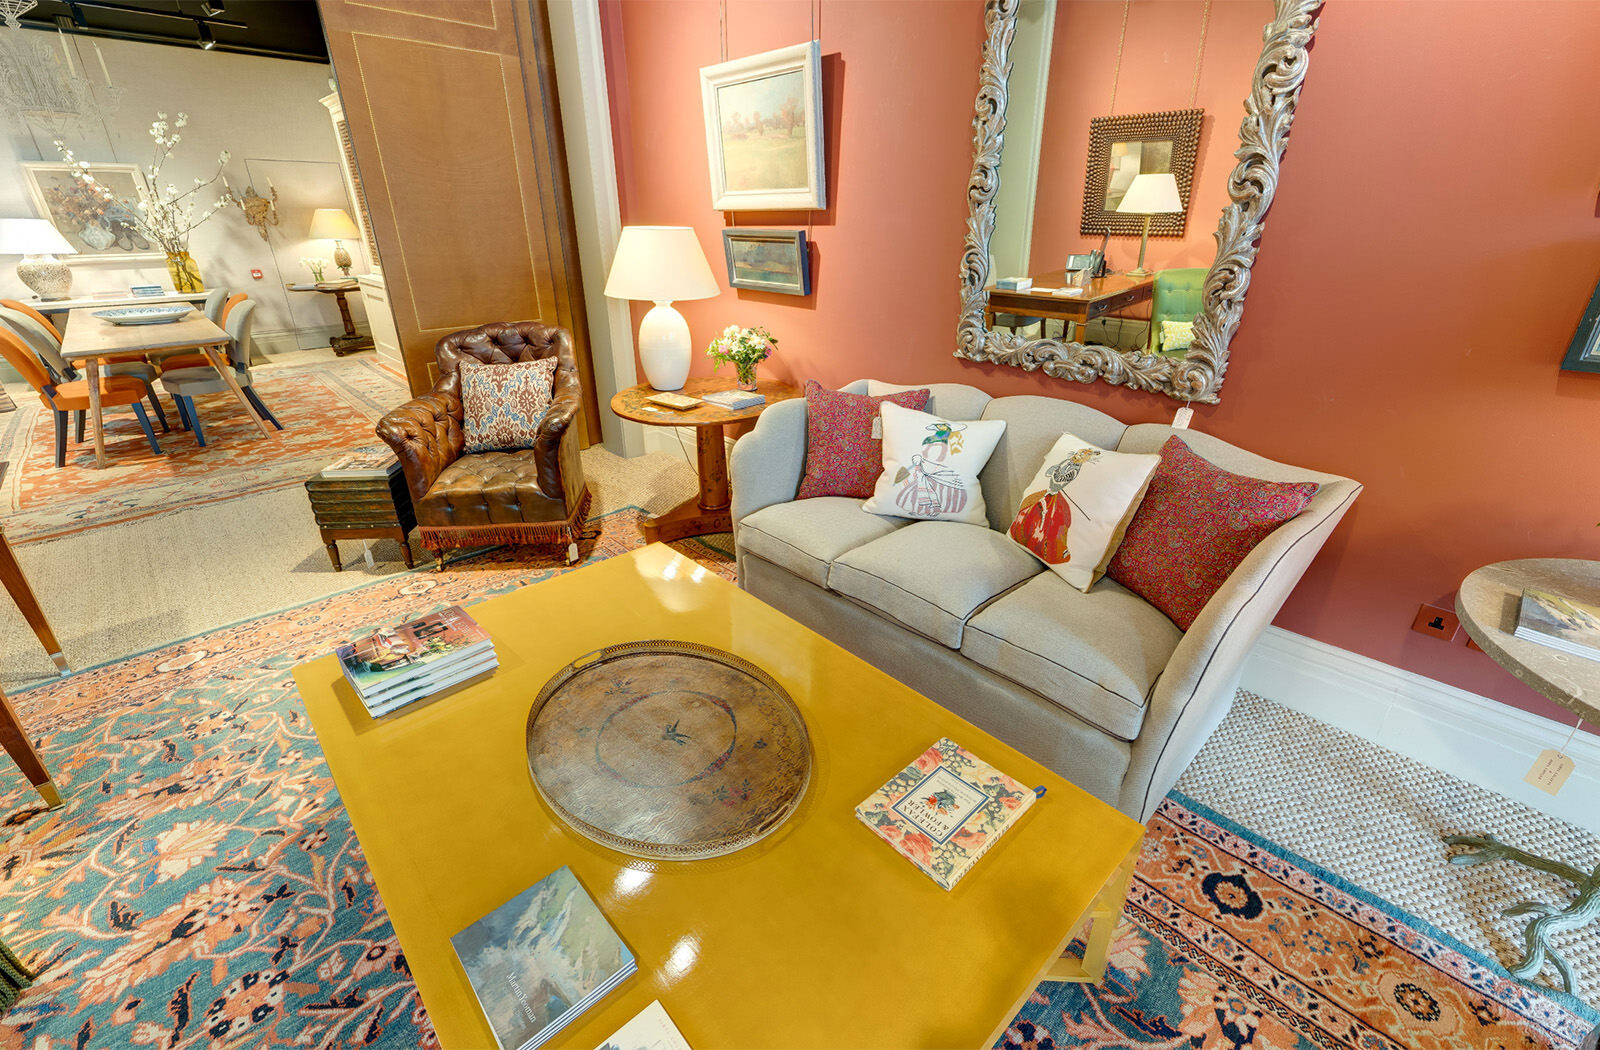 Interior design virtual tour - still from the Sibyl Colefax & John Fowler showroom